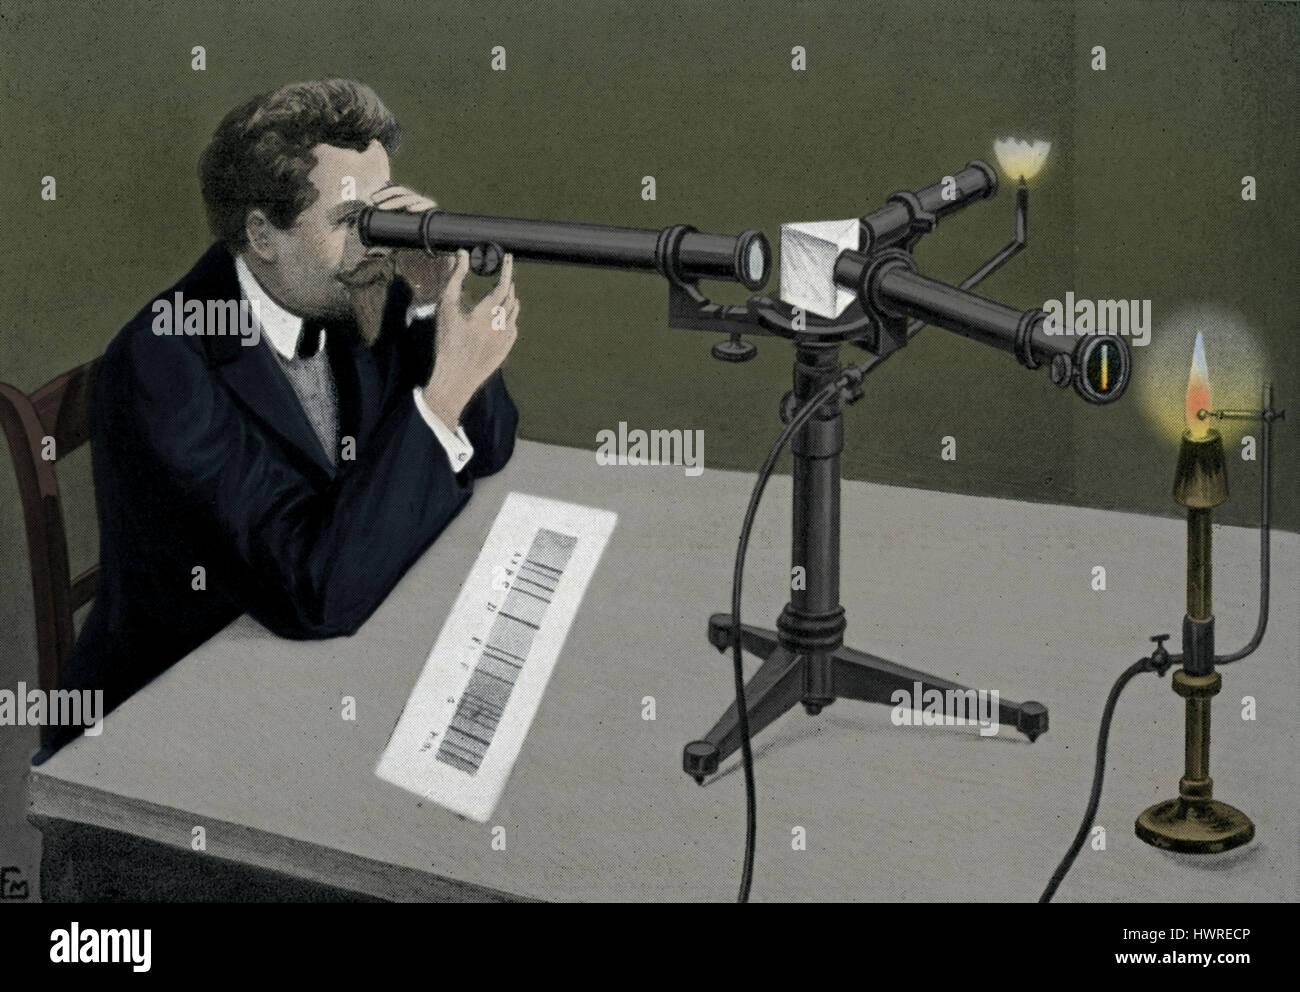 Observation with a Spectroscope. A spectroscope or spectrometer splits light into the wavelengths that make it up. Stock Photo